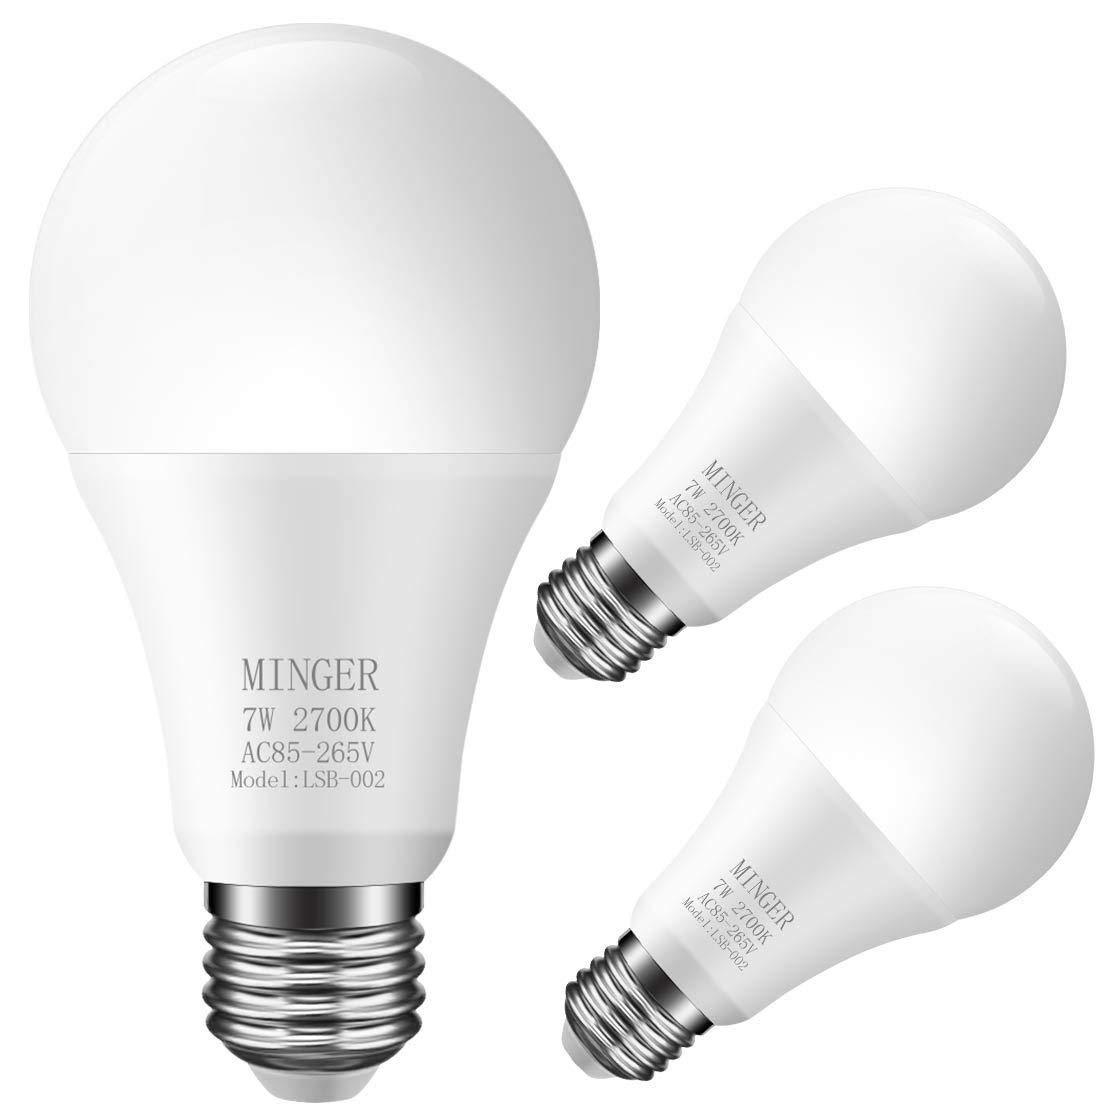 Dusk to Dawn Light Bulb,Minger 7W Smart Automatic LED Bulbs with Auto on/Off, Indoor/Outdoor Lighting Lamp for Porch, Hallway, Patio, Garage (E26/E27, Soft White,3-Pack)